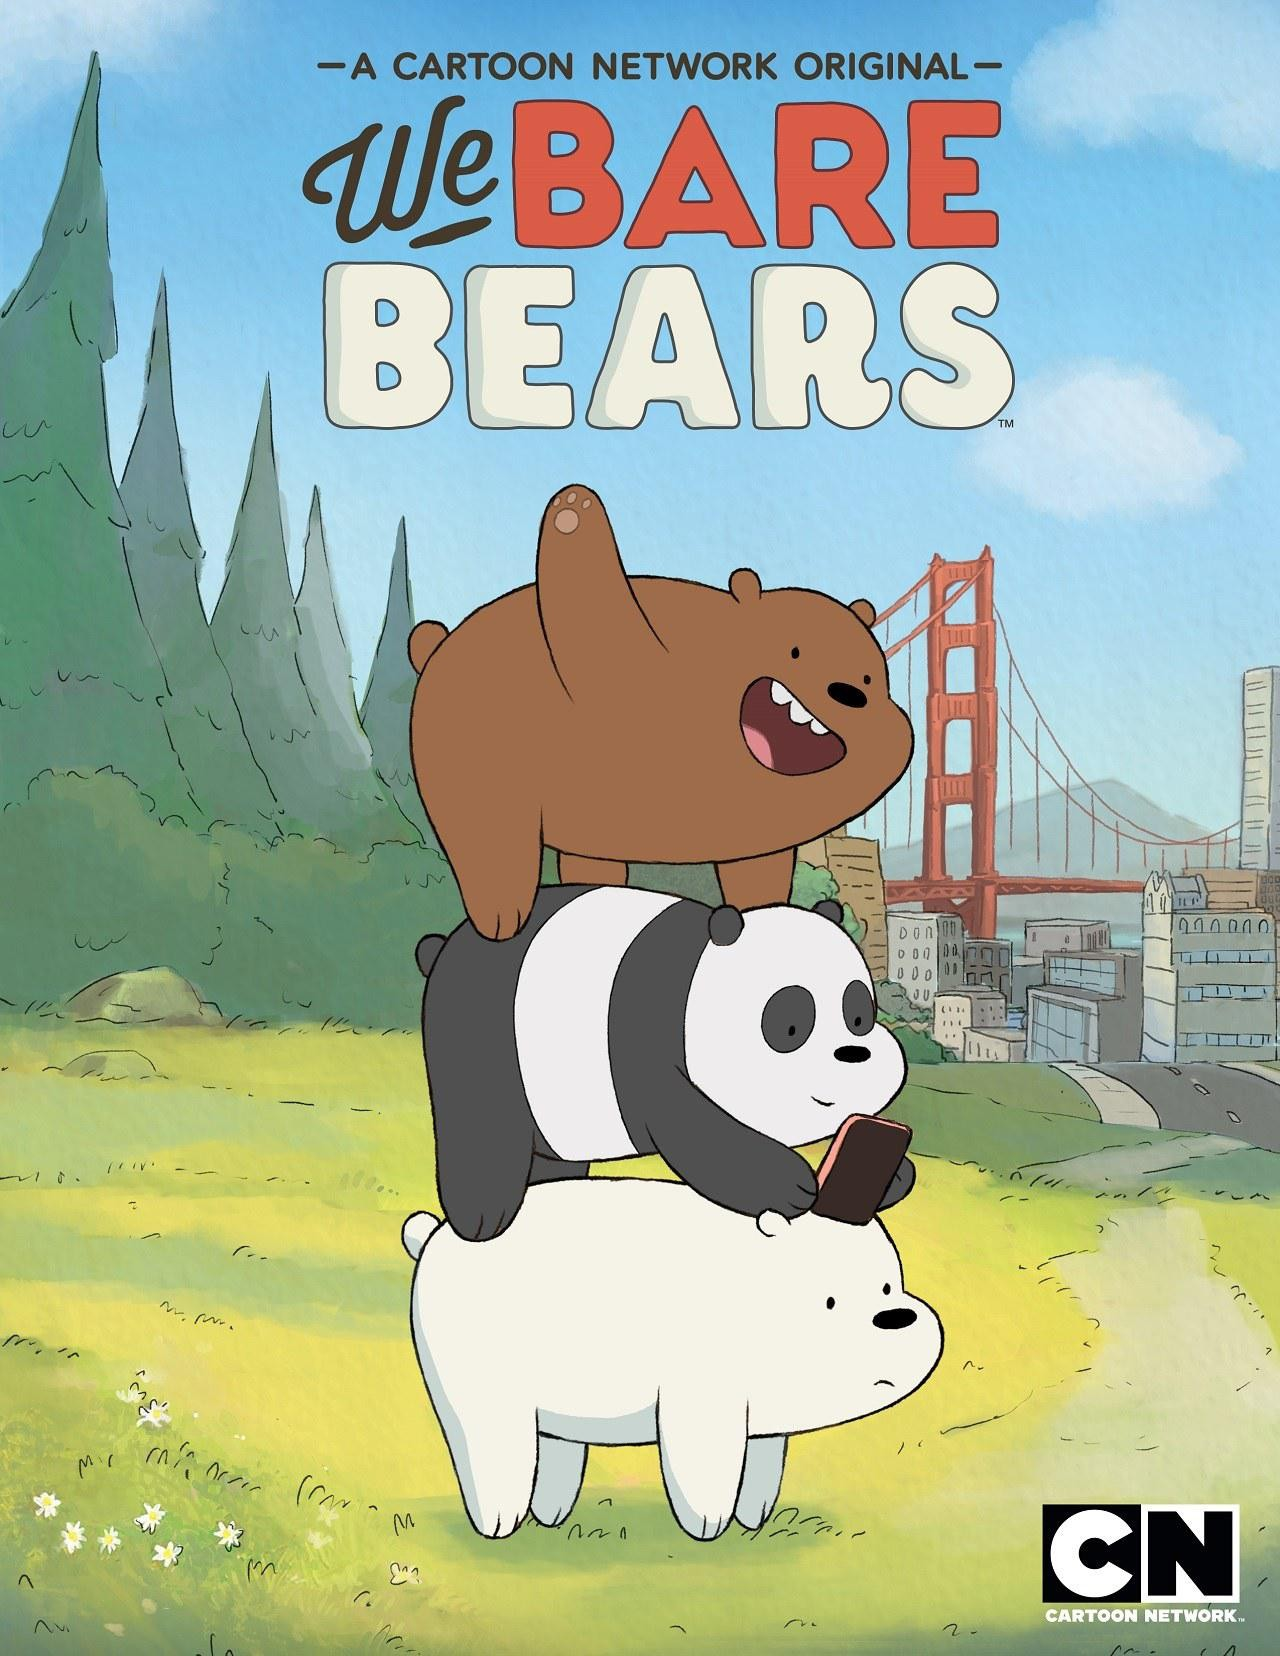 We Bare Bears 咱们裸熊